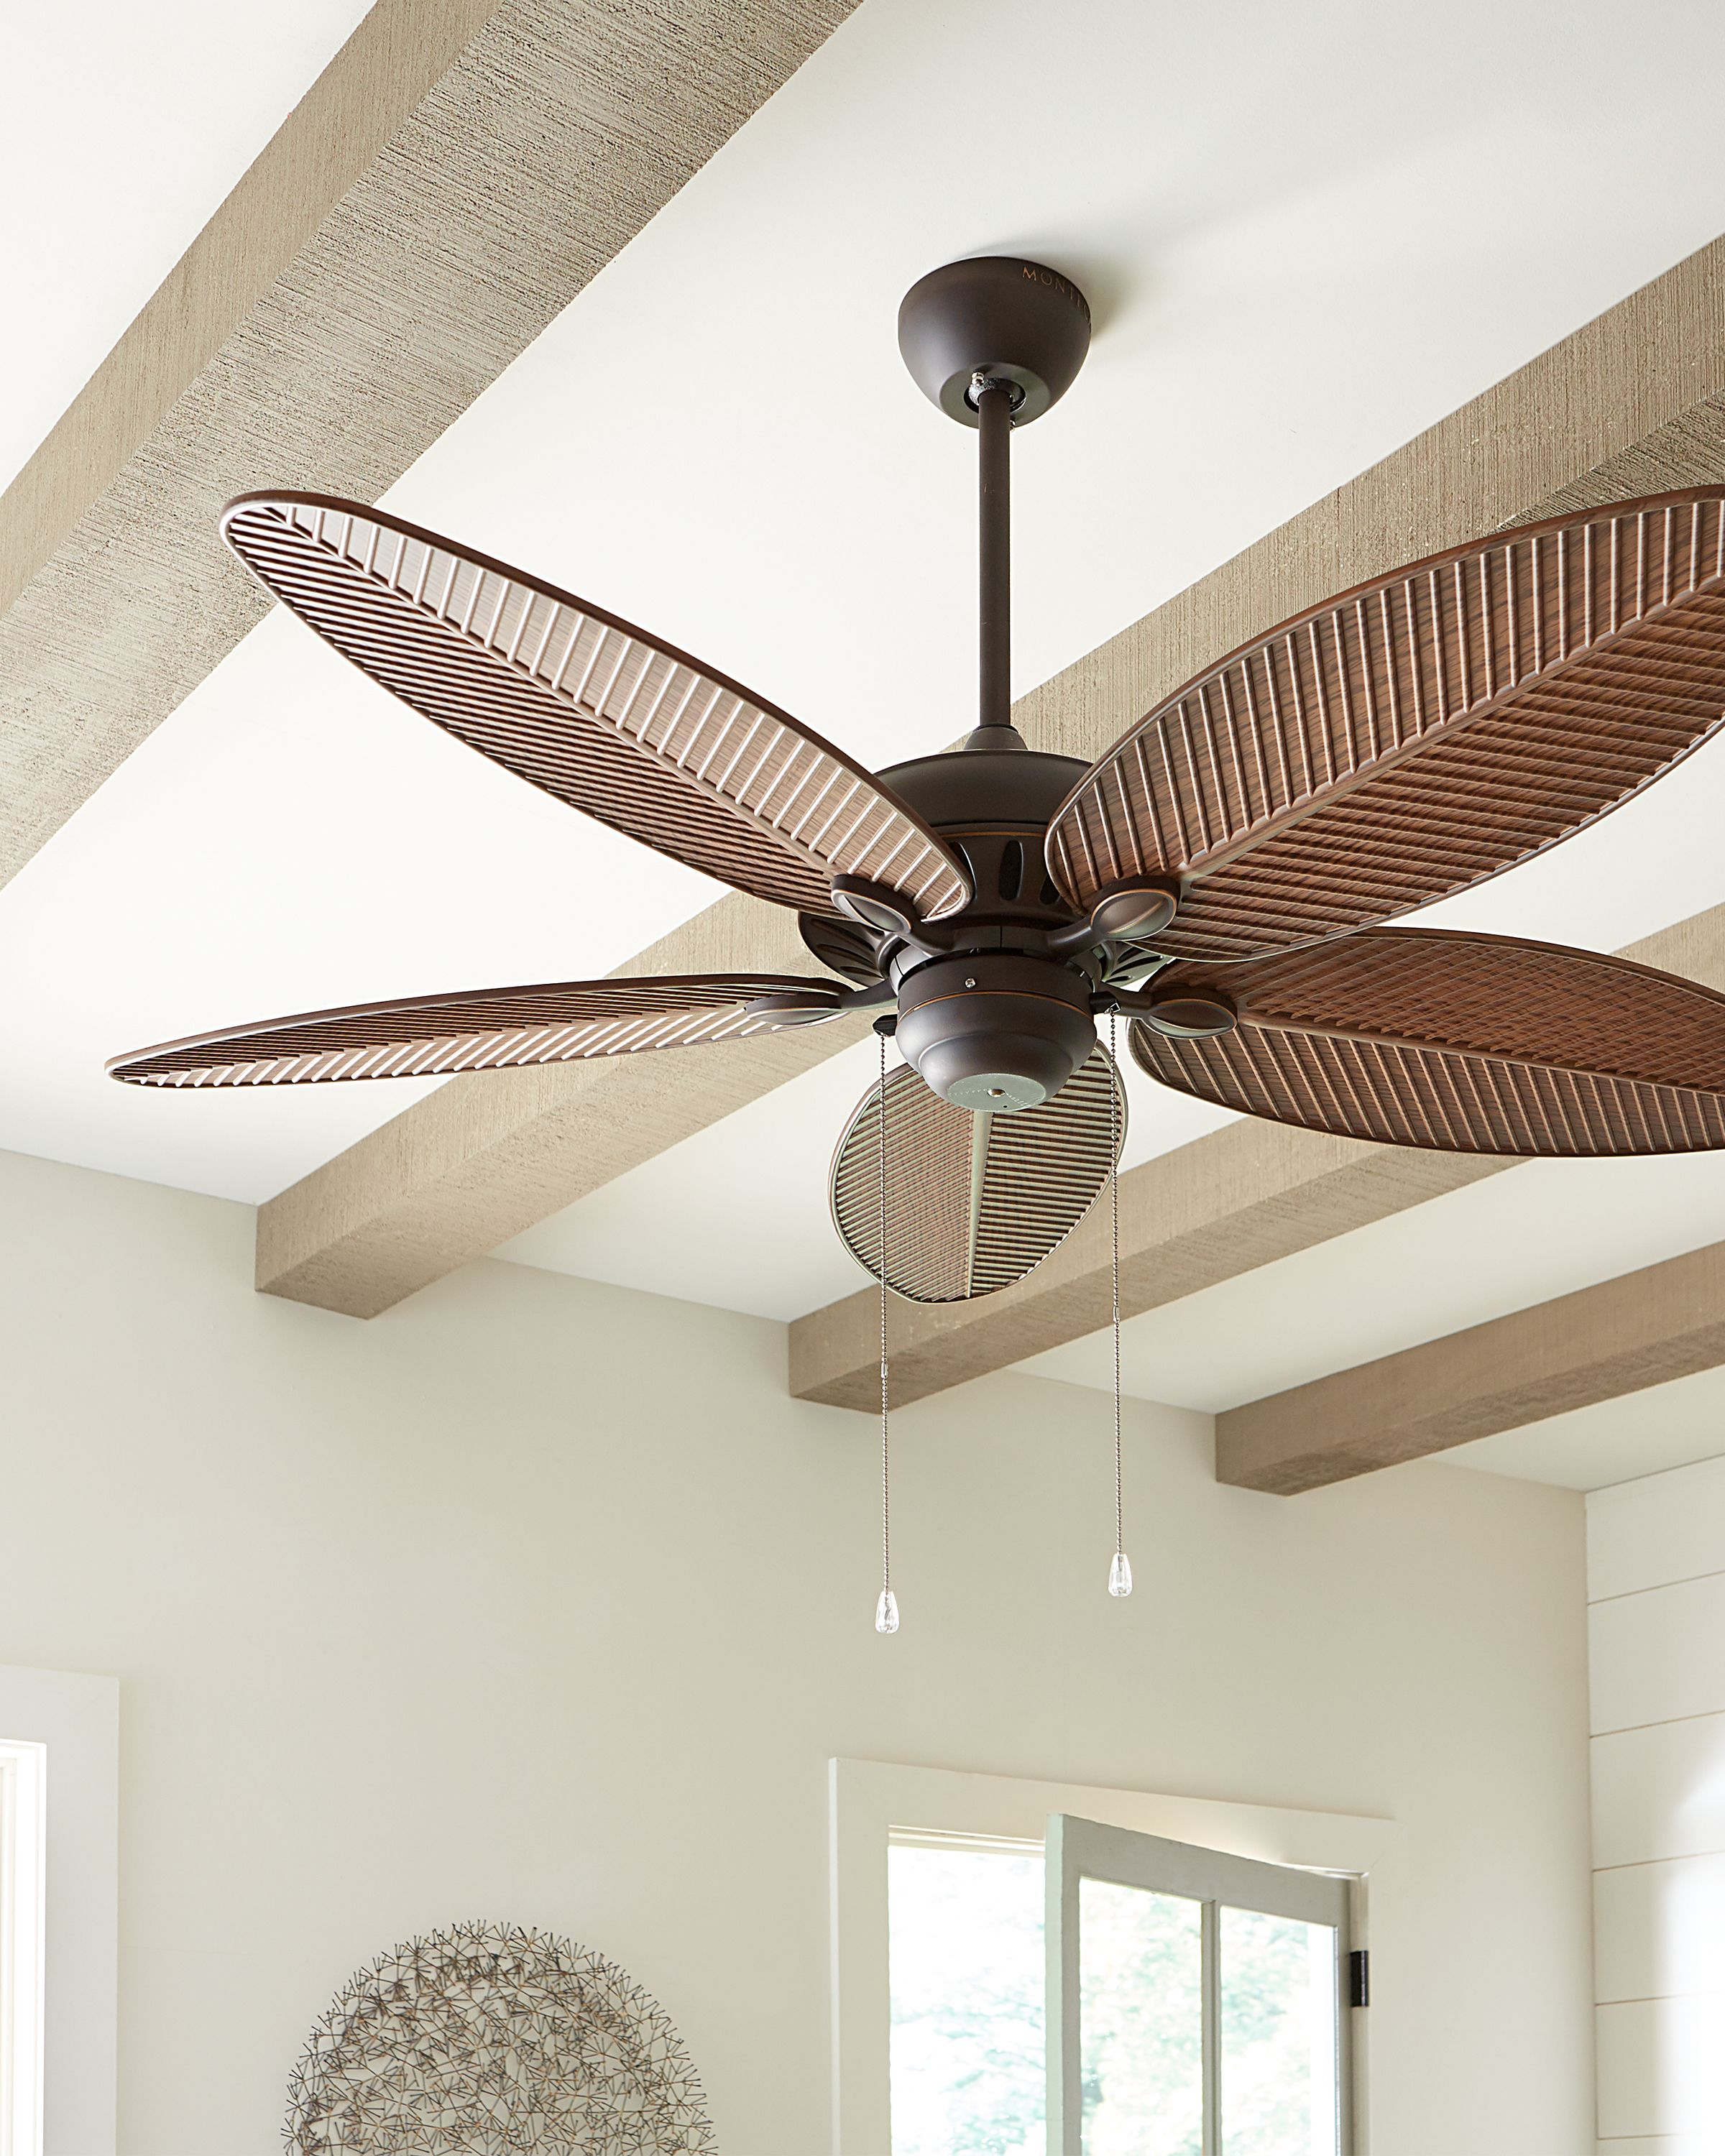 Pin By Everlights On Home Beach Outdoor Ceiling Fans Tropical Ceiling Fans Outdoor Ceiling Fans Modern